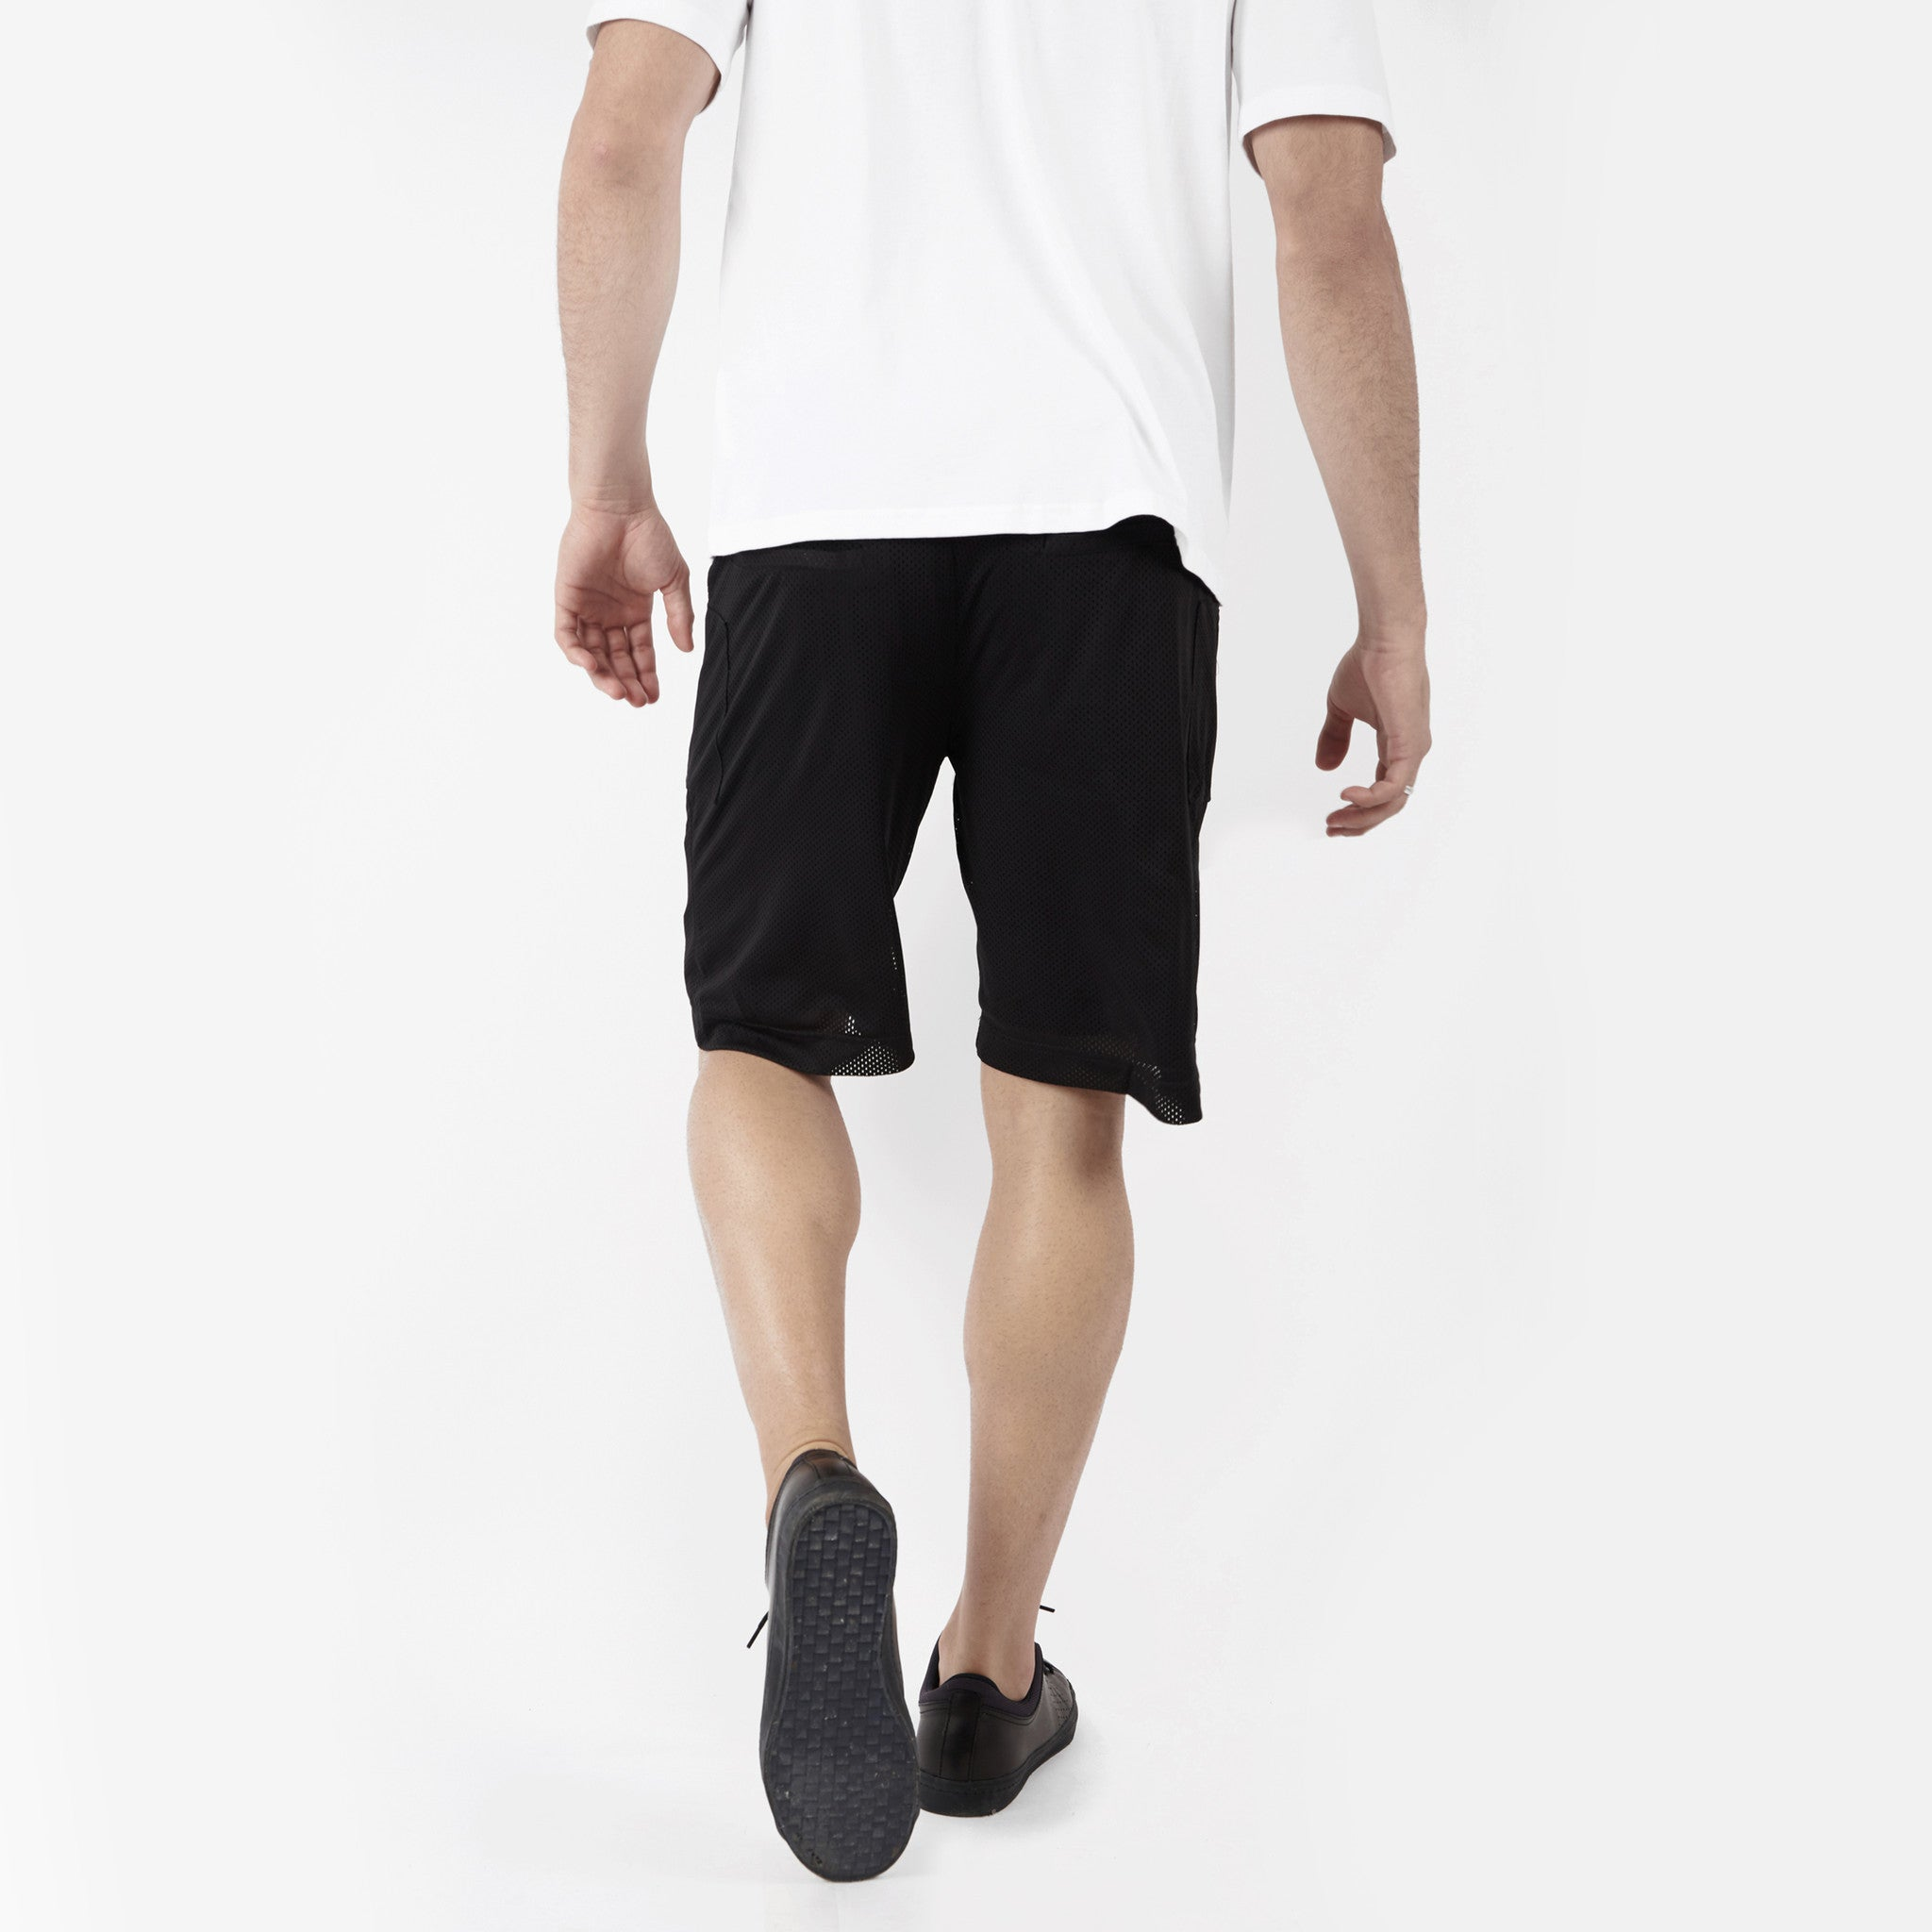 SR283 Utility Airtex Shorts - Black - underated london - underatedco - 5